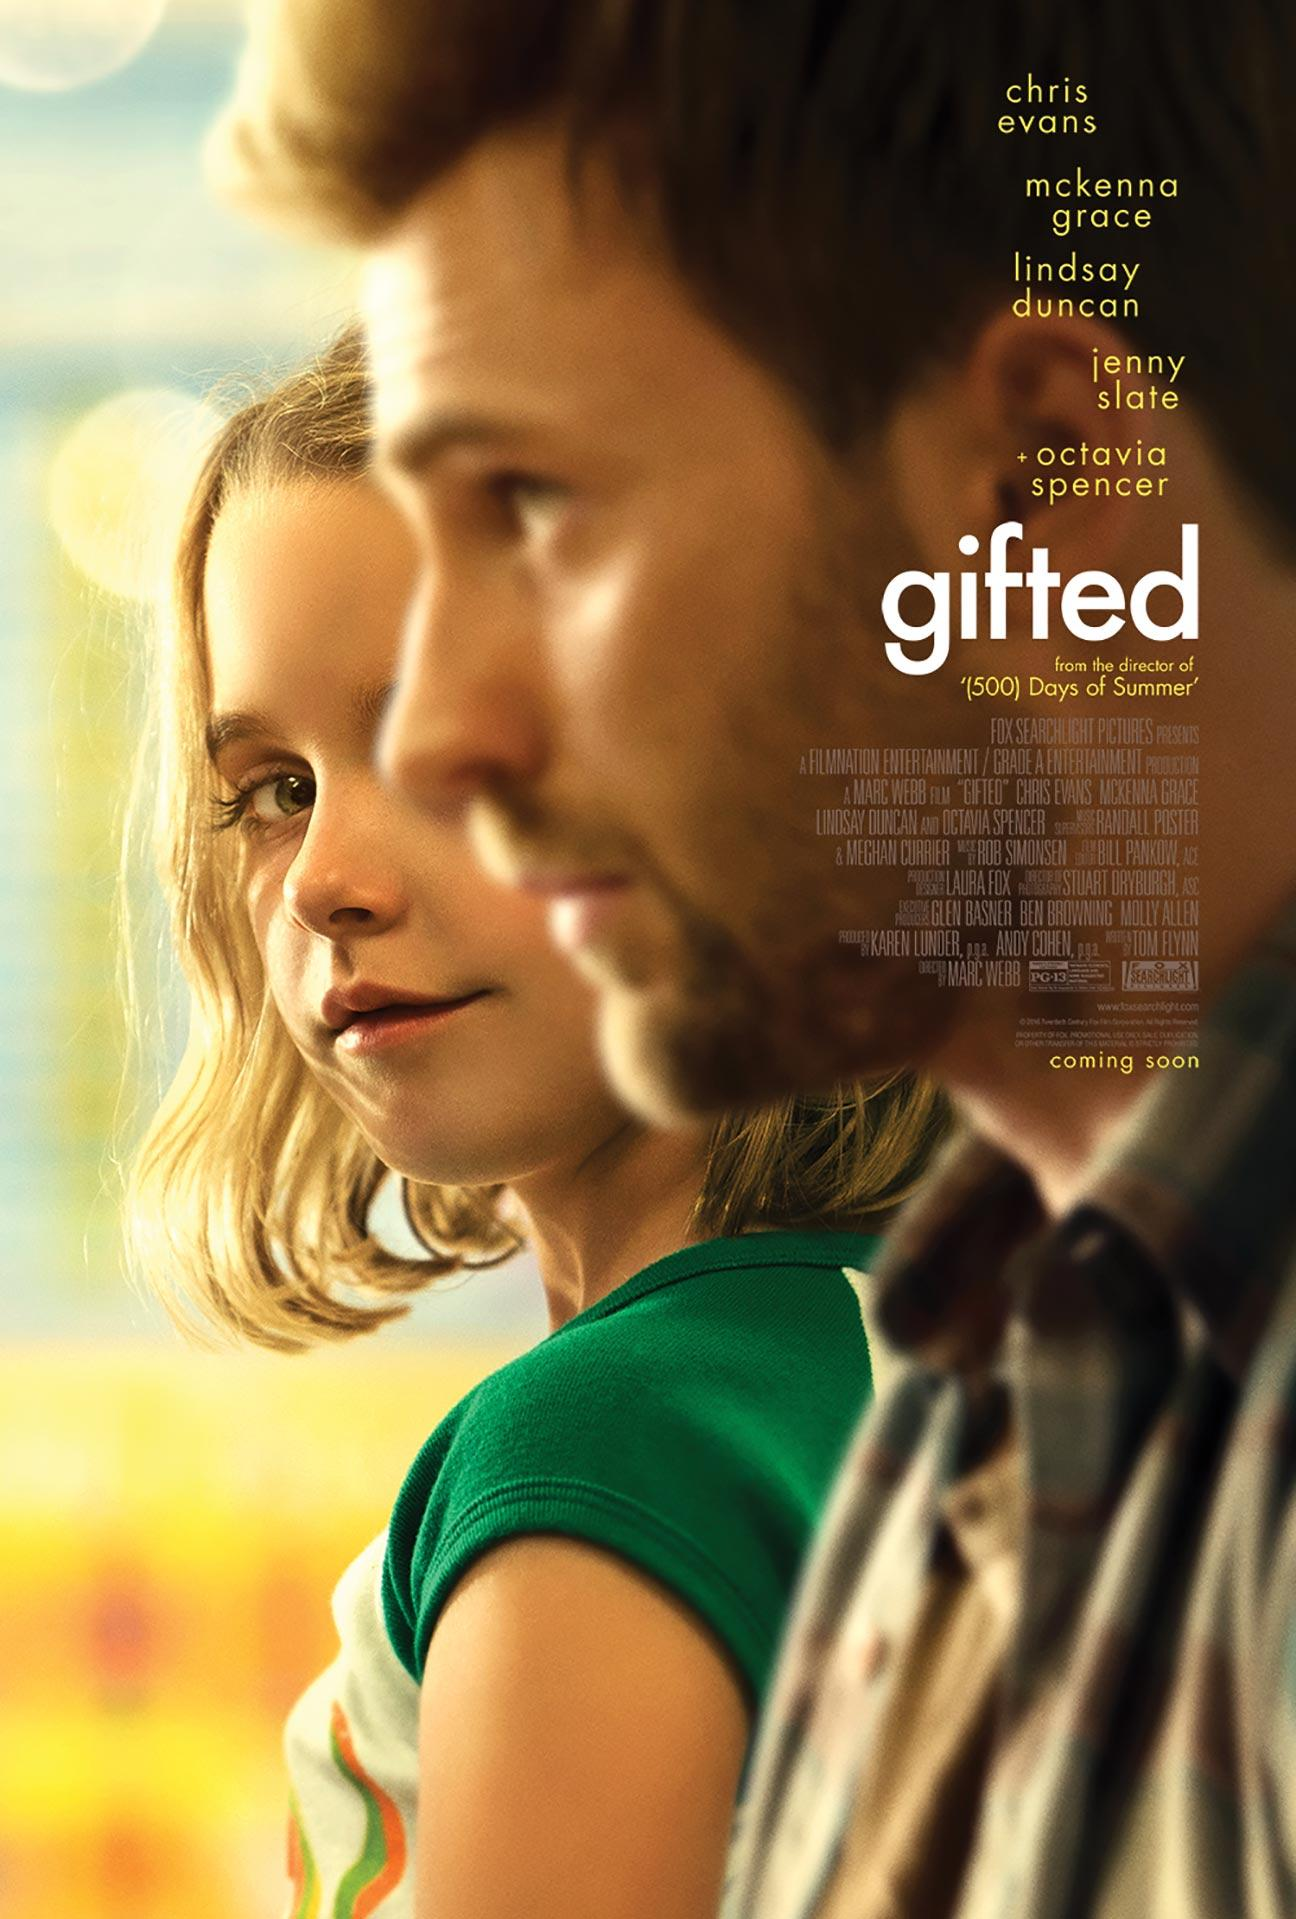 4. Gifted